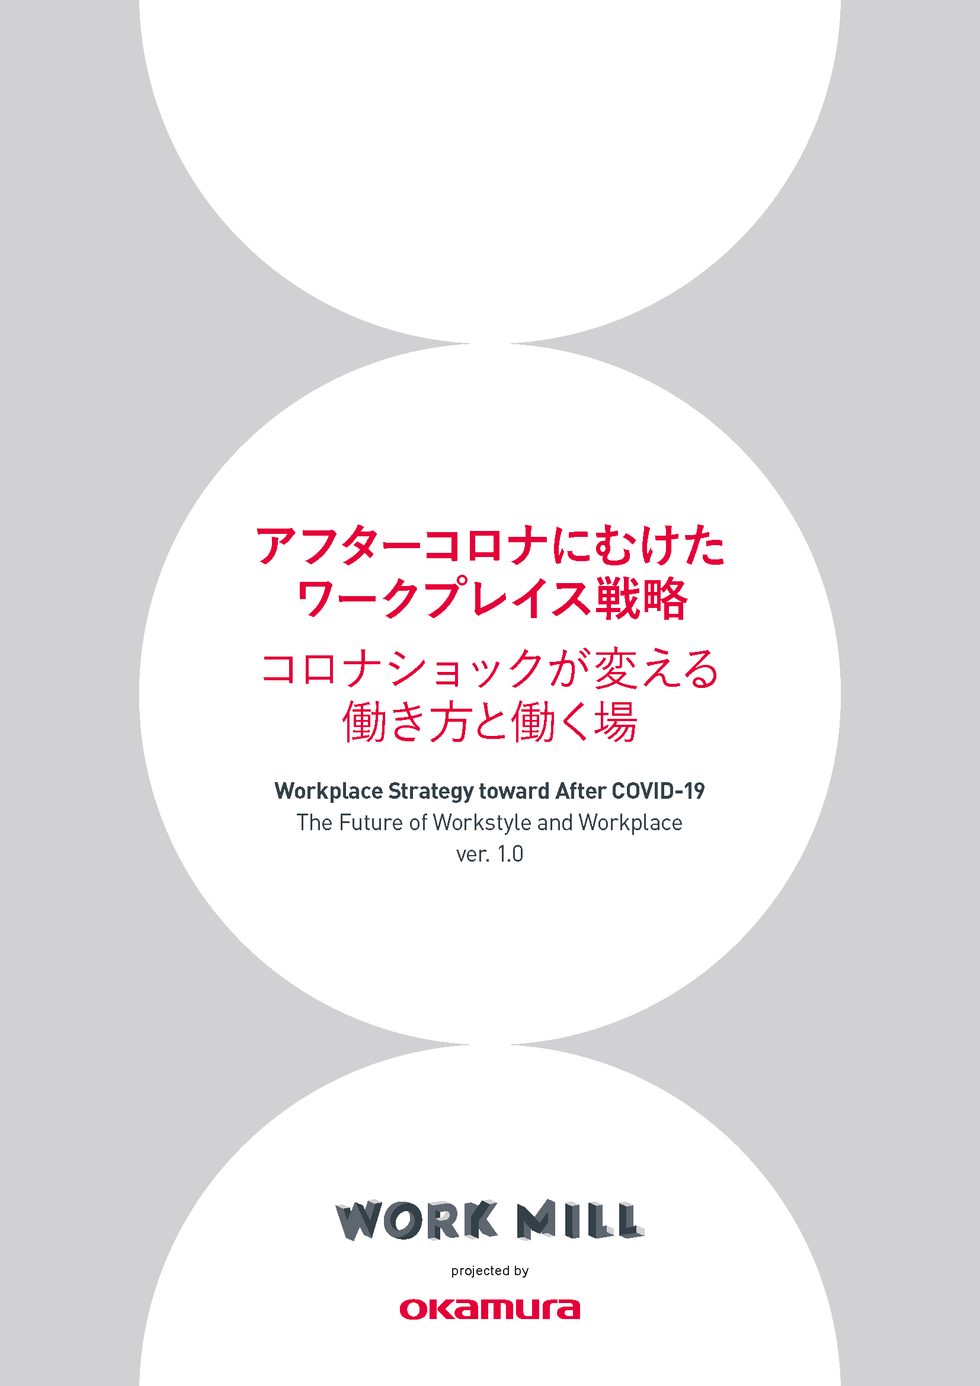 Workplace Strategy toward After COVID-19 by OKAMURA